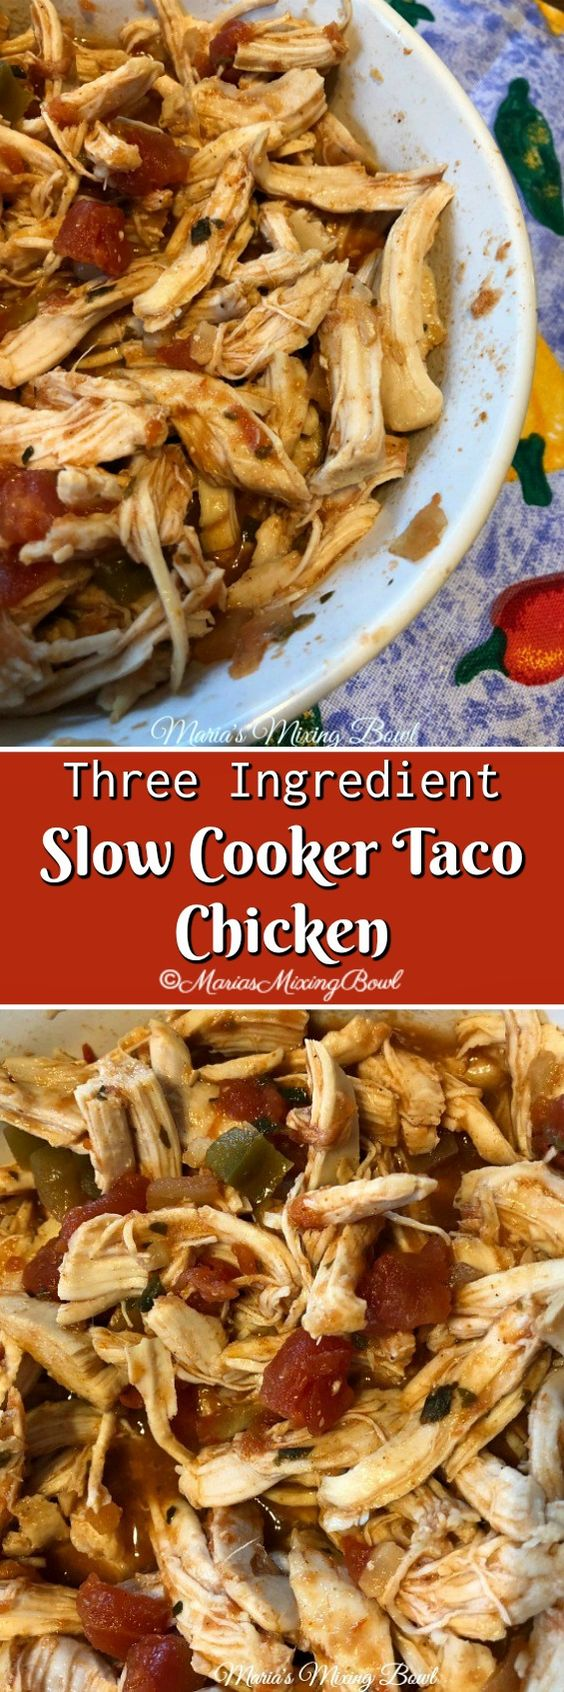 This Three Ingredient Slow Cooker Taco Chicken is the easiest recipe for chicken tacos. Just a few minutes of prep time and a slow cooker and your good to go!